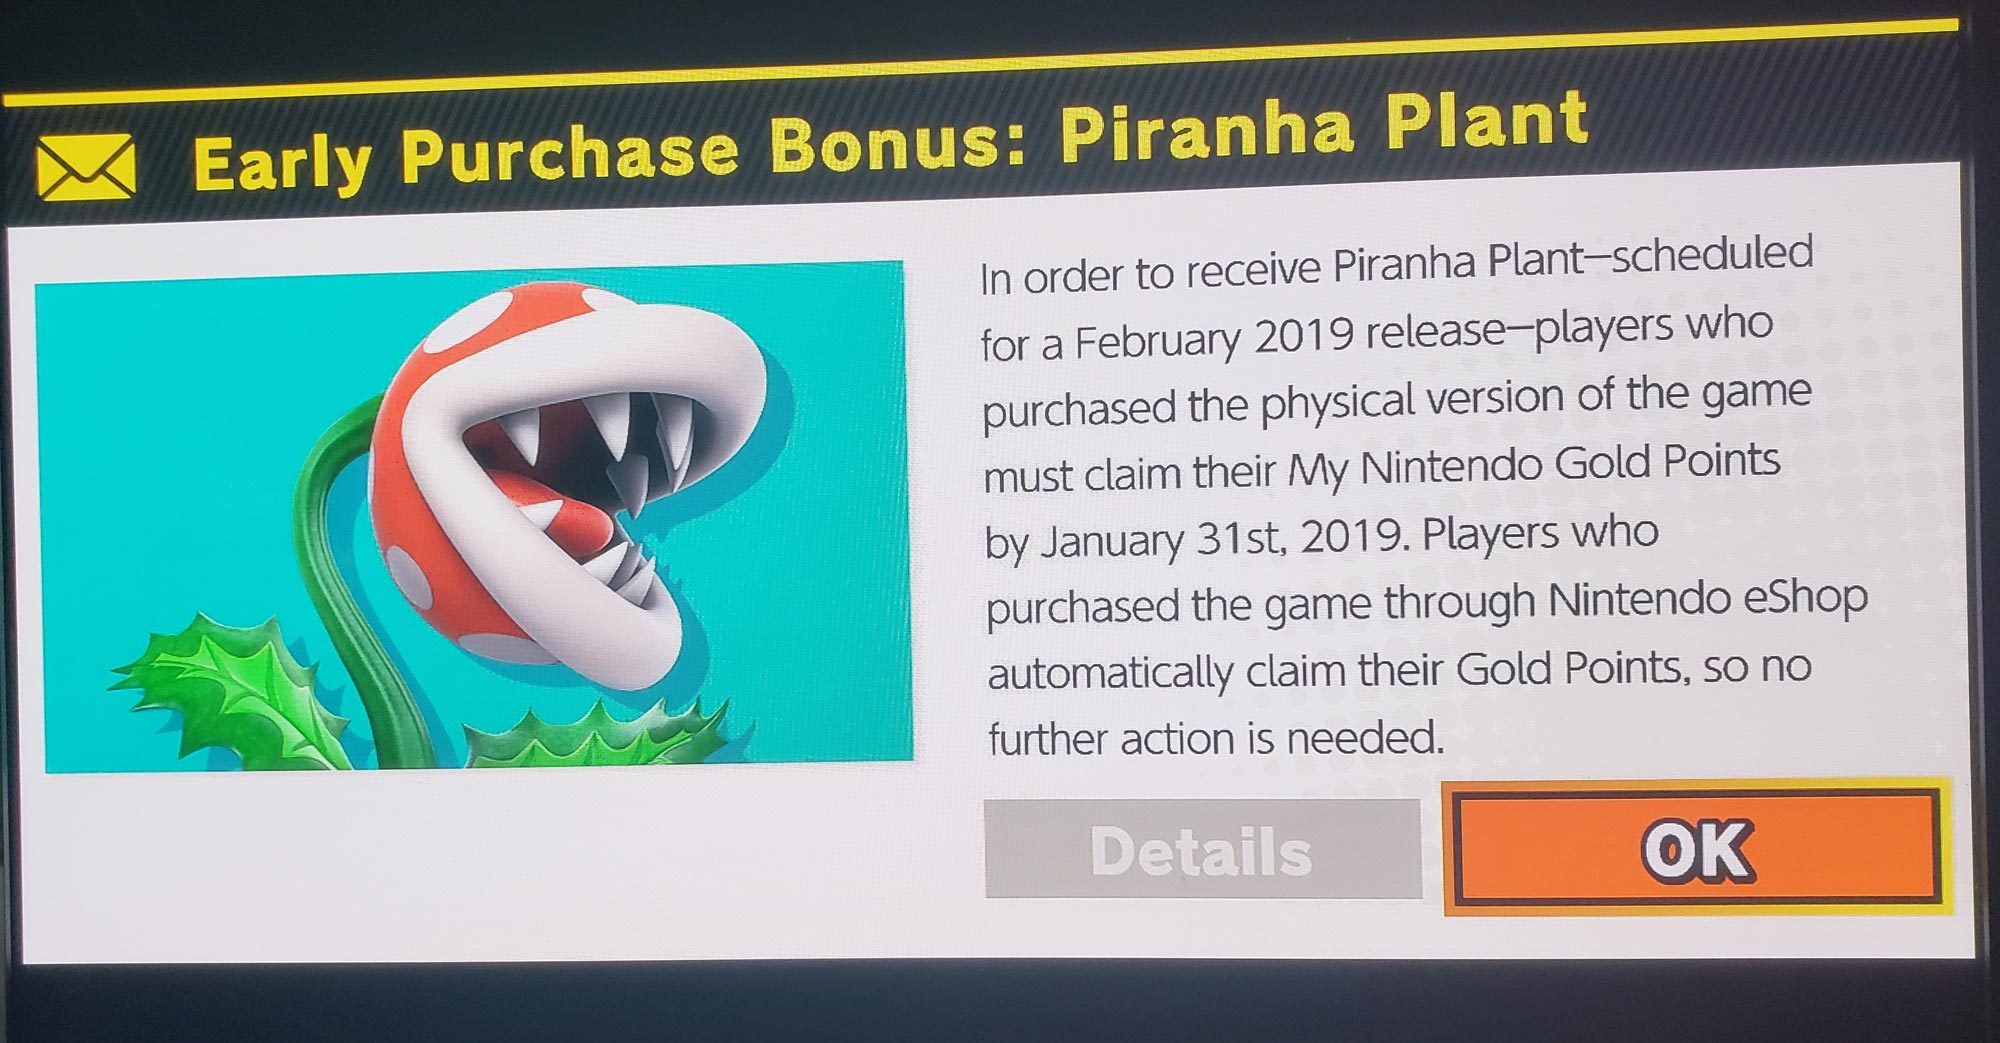 Piranha Plant Super Smash Bros. Ultimate prerequisite 2 out of 4 image gallery